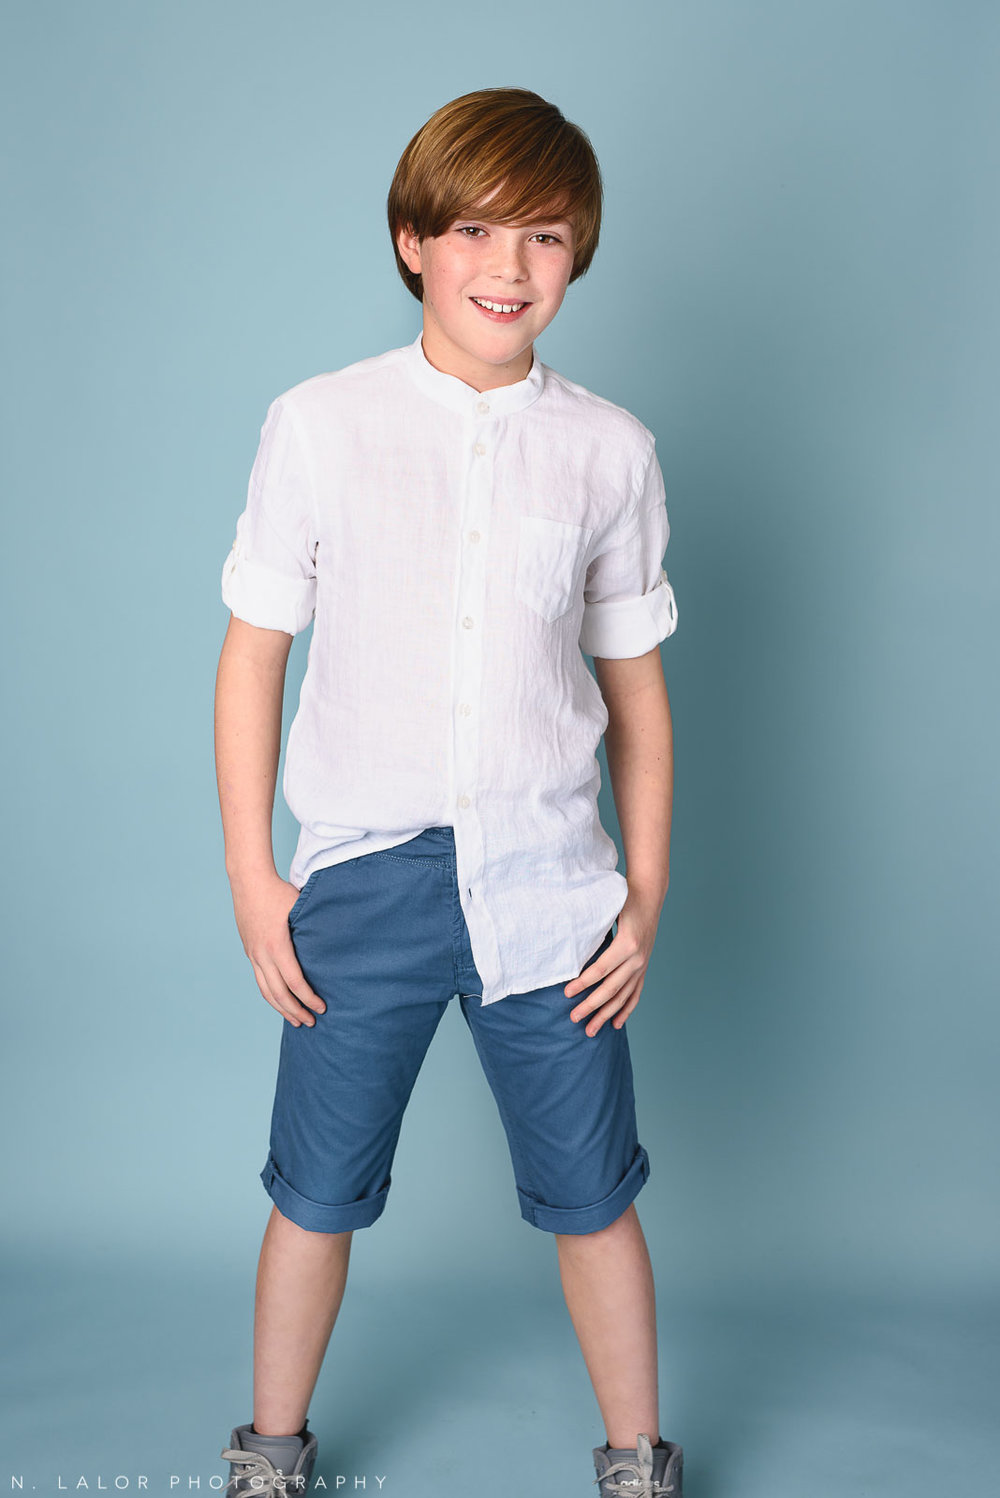 Linen shirt and summer shorts. Boy fashion portrait by N. Lalor Photography. New Canaan, Connecticut.